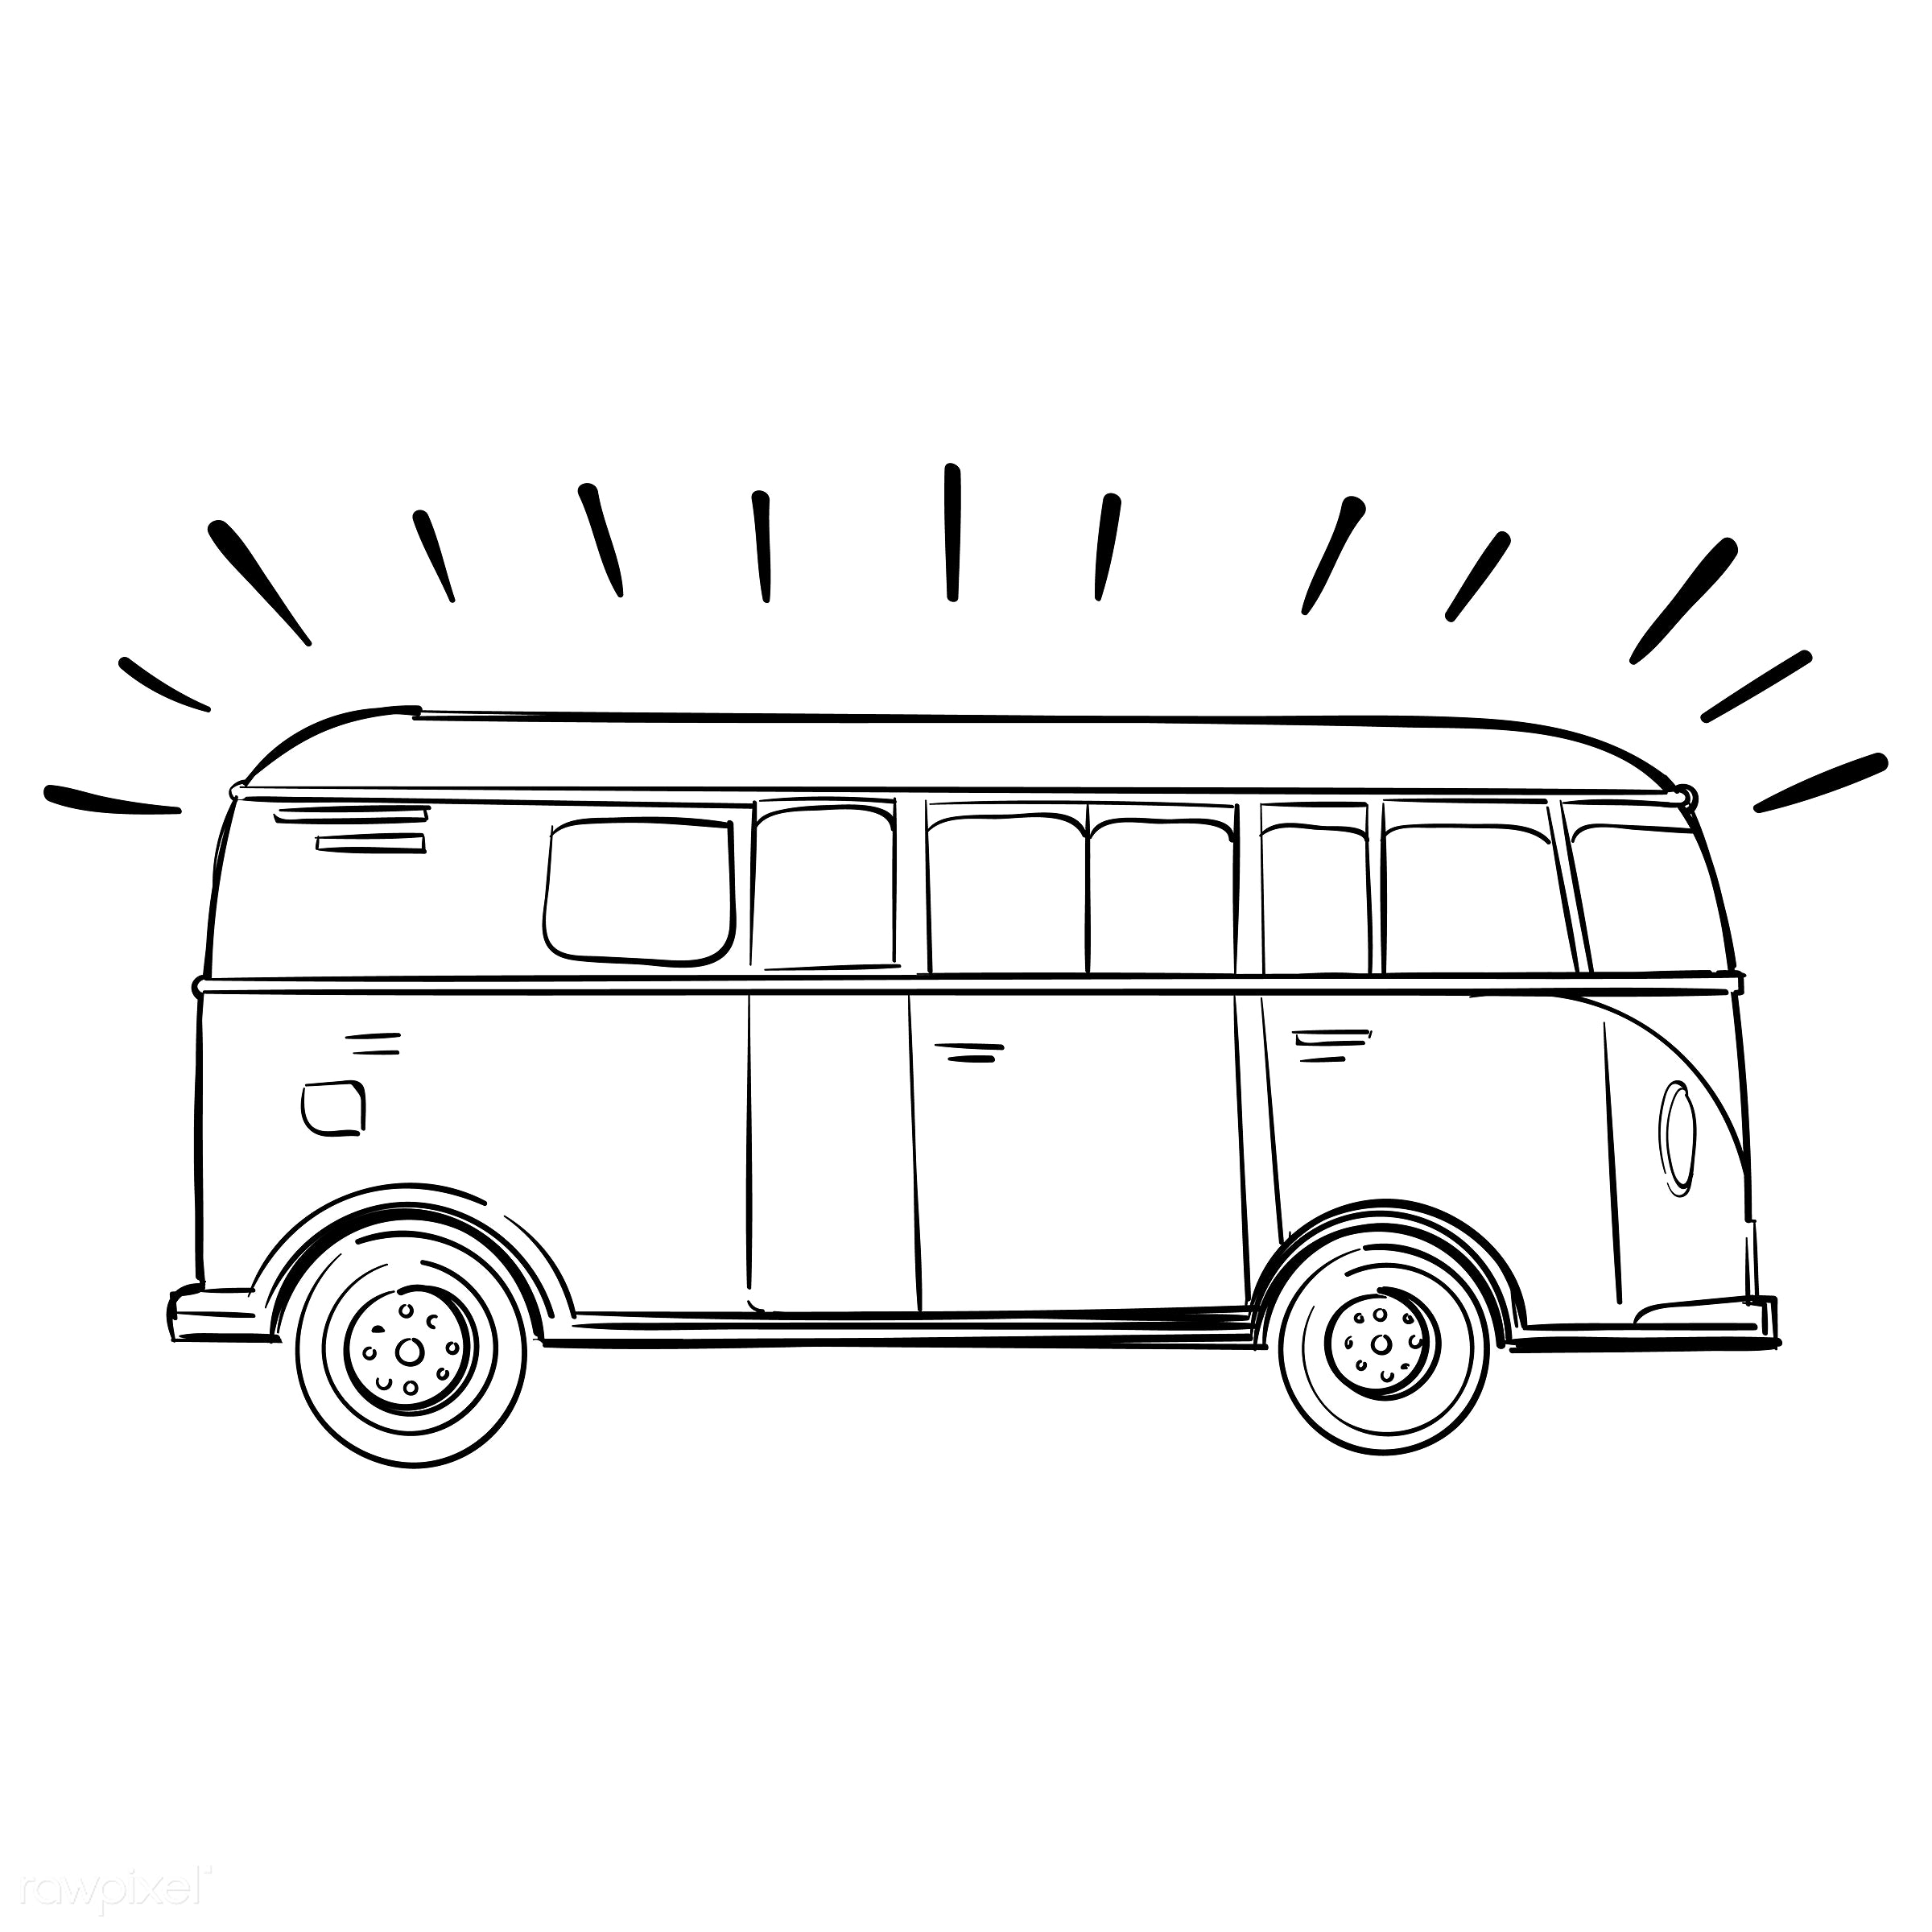 Hand drawing illustration set of wanderlust icons - adventure, art, artwork, bus, camp, camping, car, creative, creativity,...